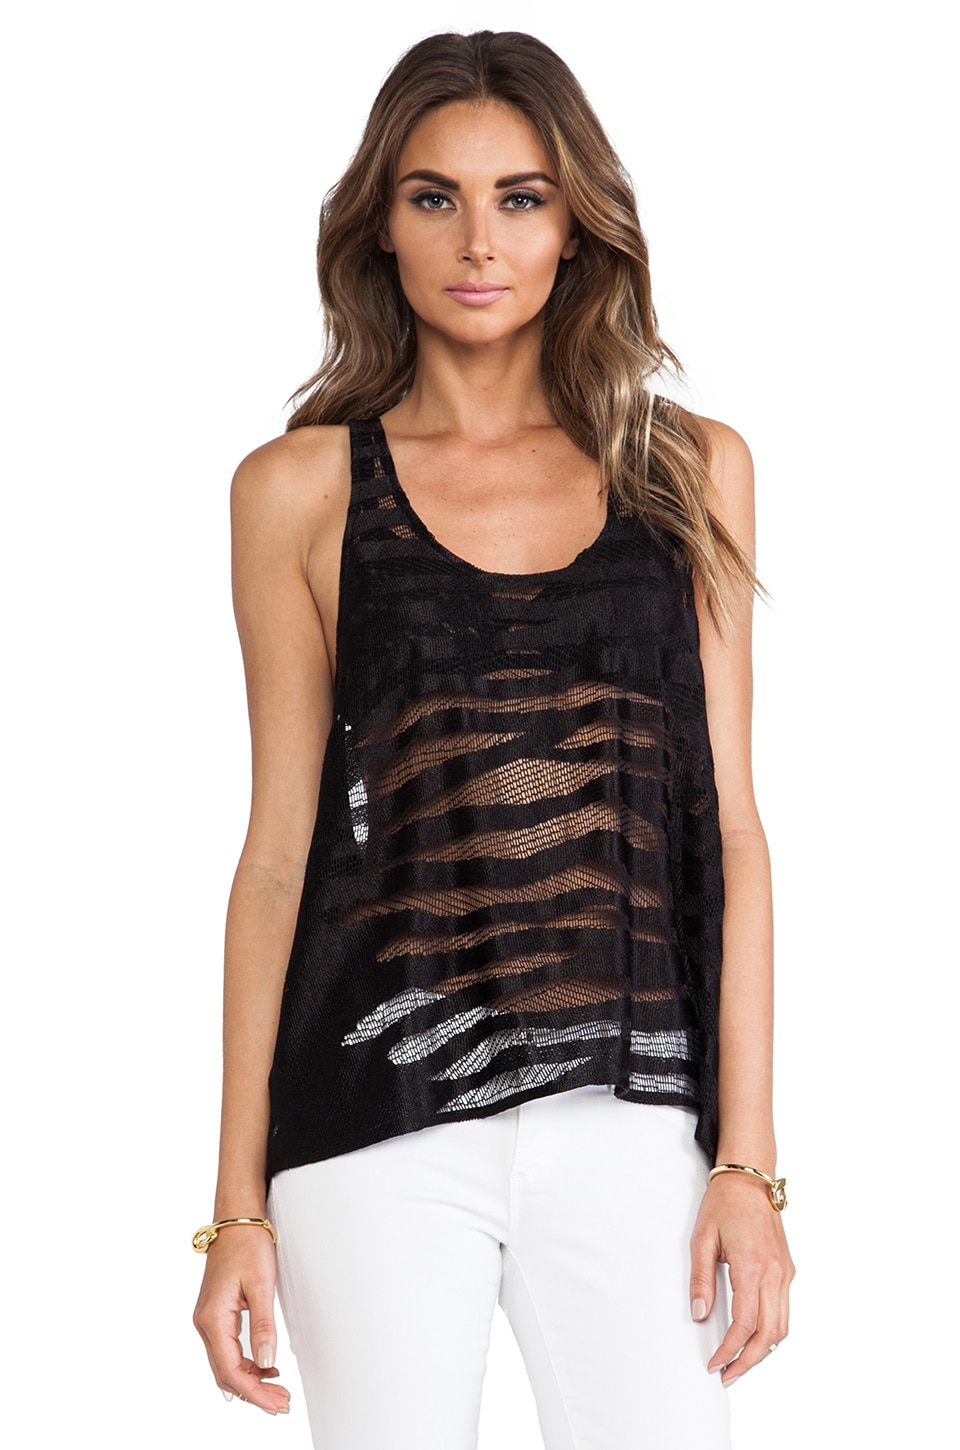 Alexis Brill Racerback Tank in Black Safari